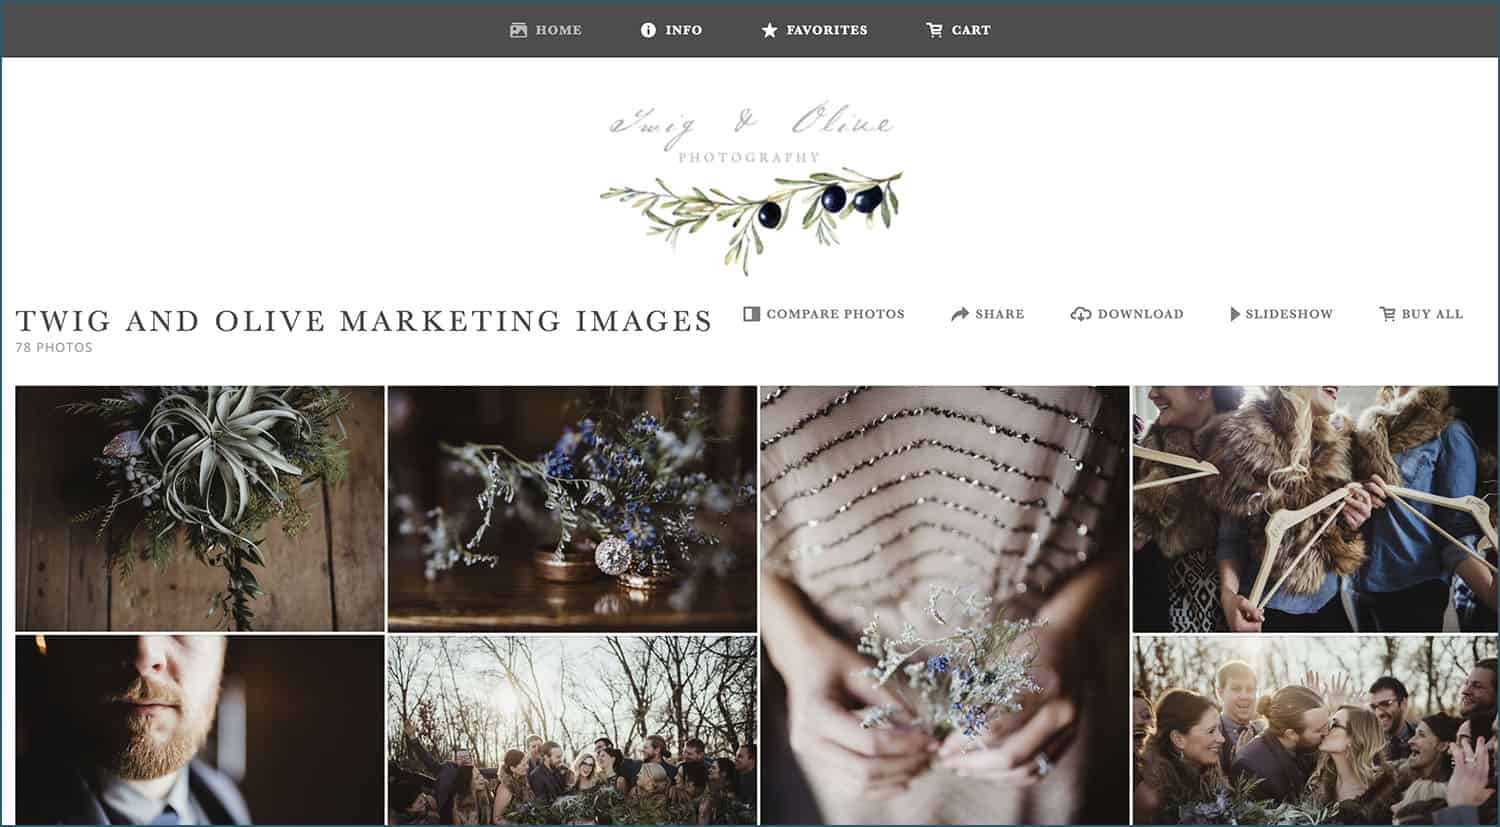 Twig & Olive knows how to sell more photos: with a beautifully customized ShootProof shopping cart!